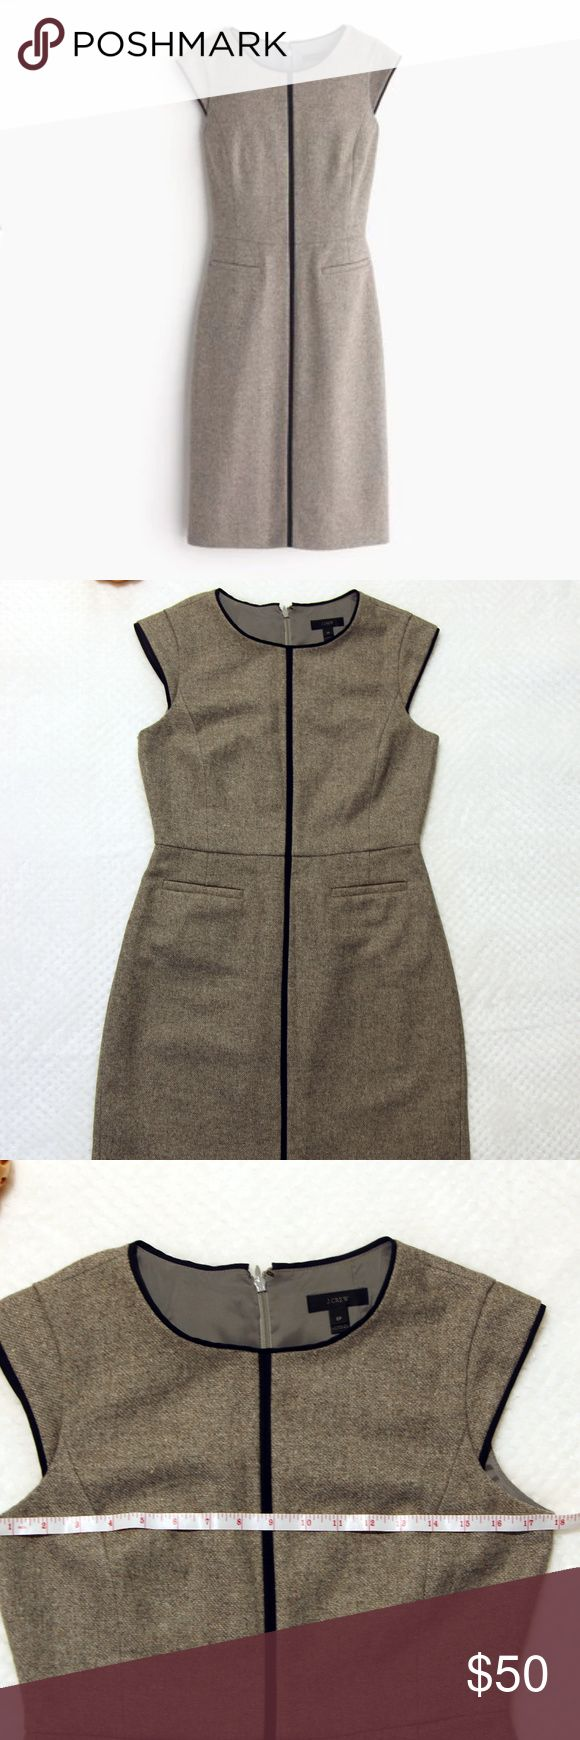 J.Crew Petite 8 cap-sleeve dress in Donegal wool A structured and slimming cap-sleeve dress makes getting out the door in the morning (after that fourth snooze) that much easier and speedier. Made of refined Donegal wool, this sleek sheath is one to keep in your weekly rotation.  -Pre-loved; in excellent condition -Wool/poly. -Back zip. -Pockets. -Lined. -Dry clean. J. Crew Dresses